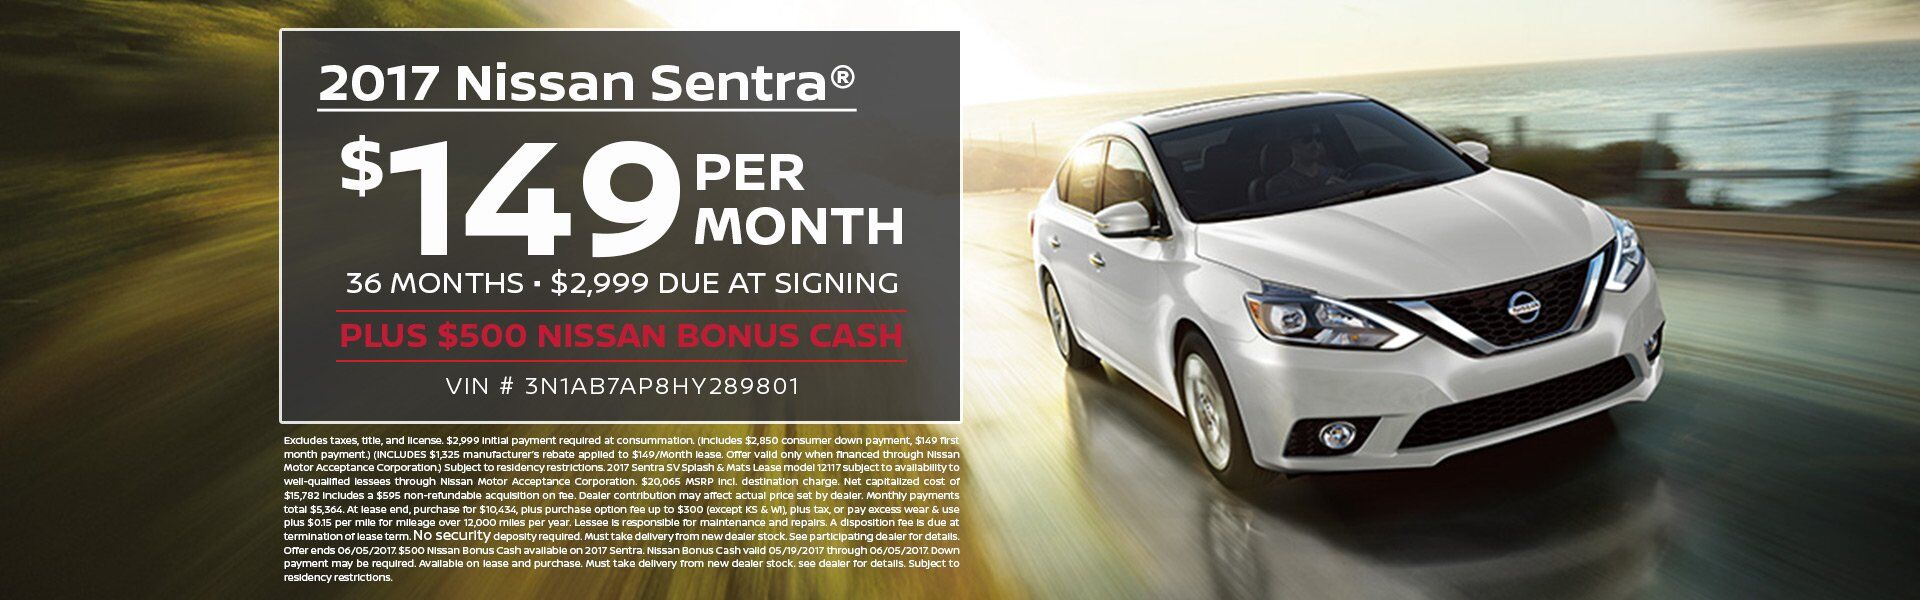 2017 Sentra Lease